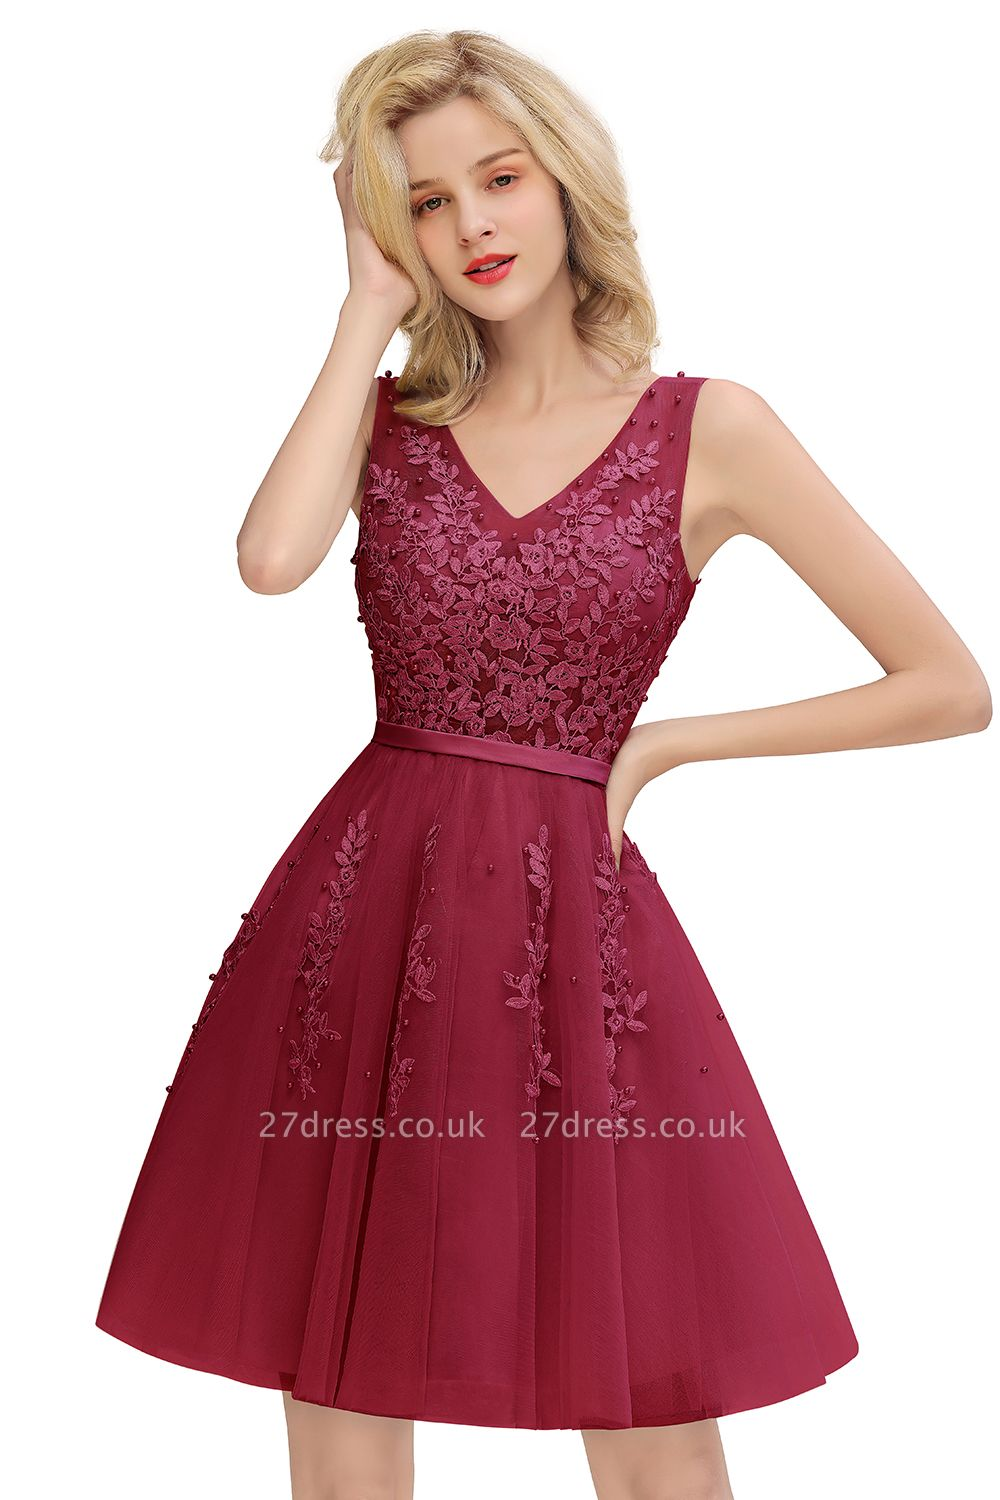 V-neck Lace Homecoming Dresses with Appliques | Cheap Short Party Dresses UK Online